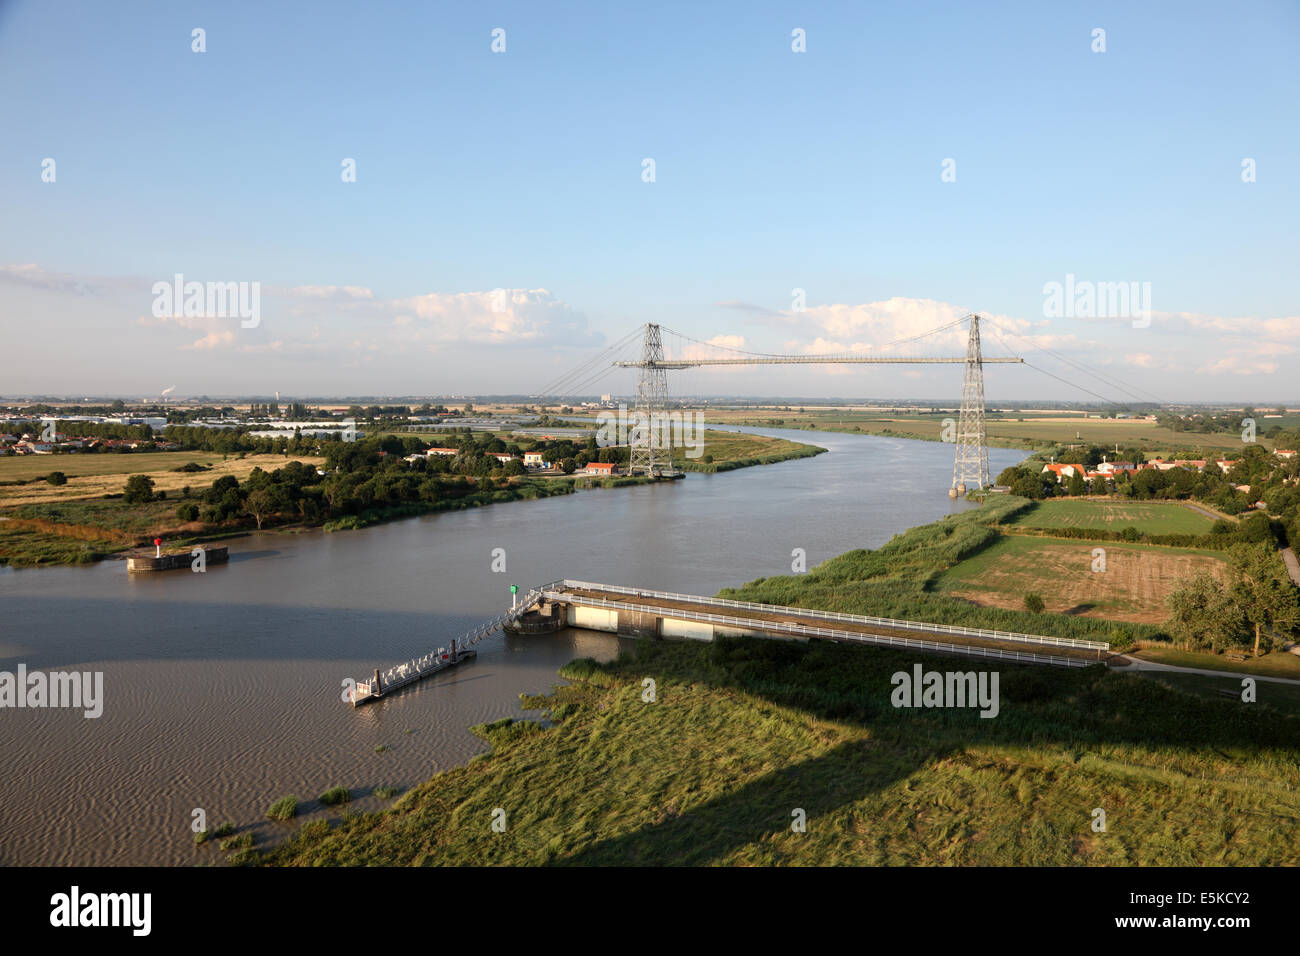 Transporter bridge crossing the Charente river between Rochefort and Echillais in the Charente-Maritime, France - Stock Image